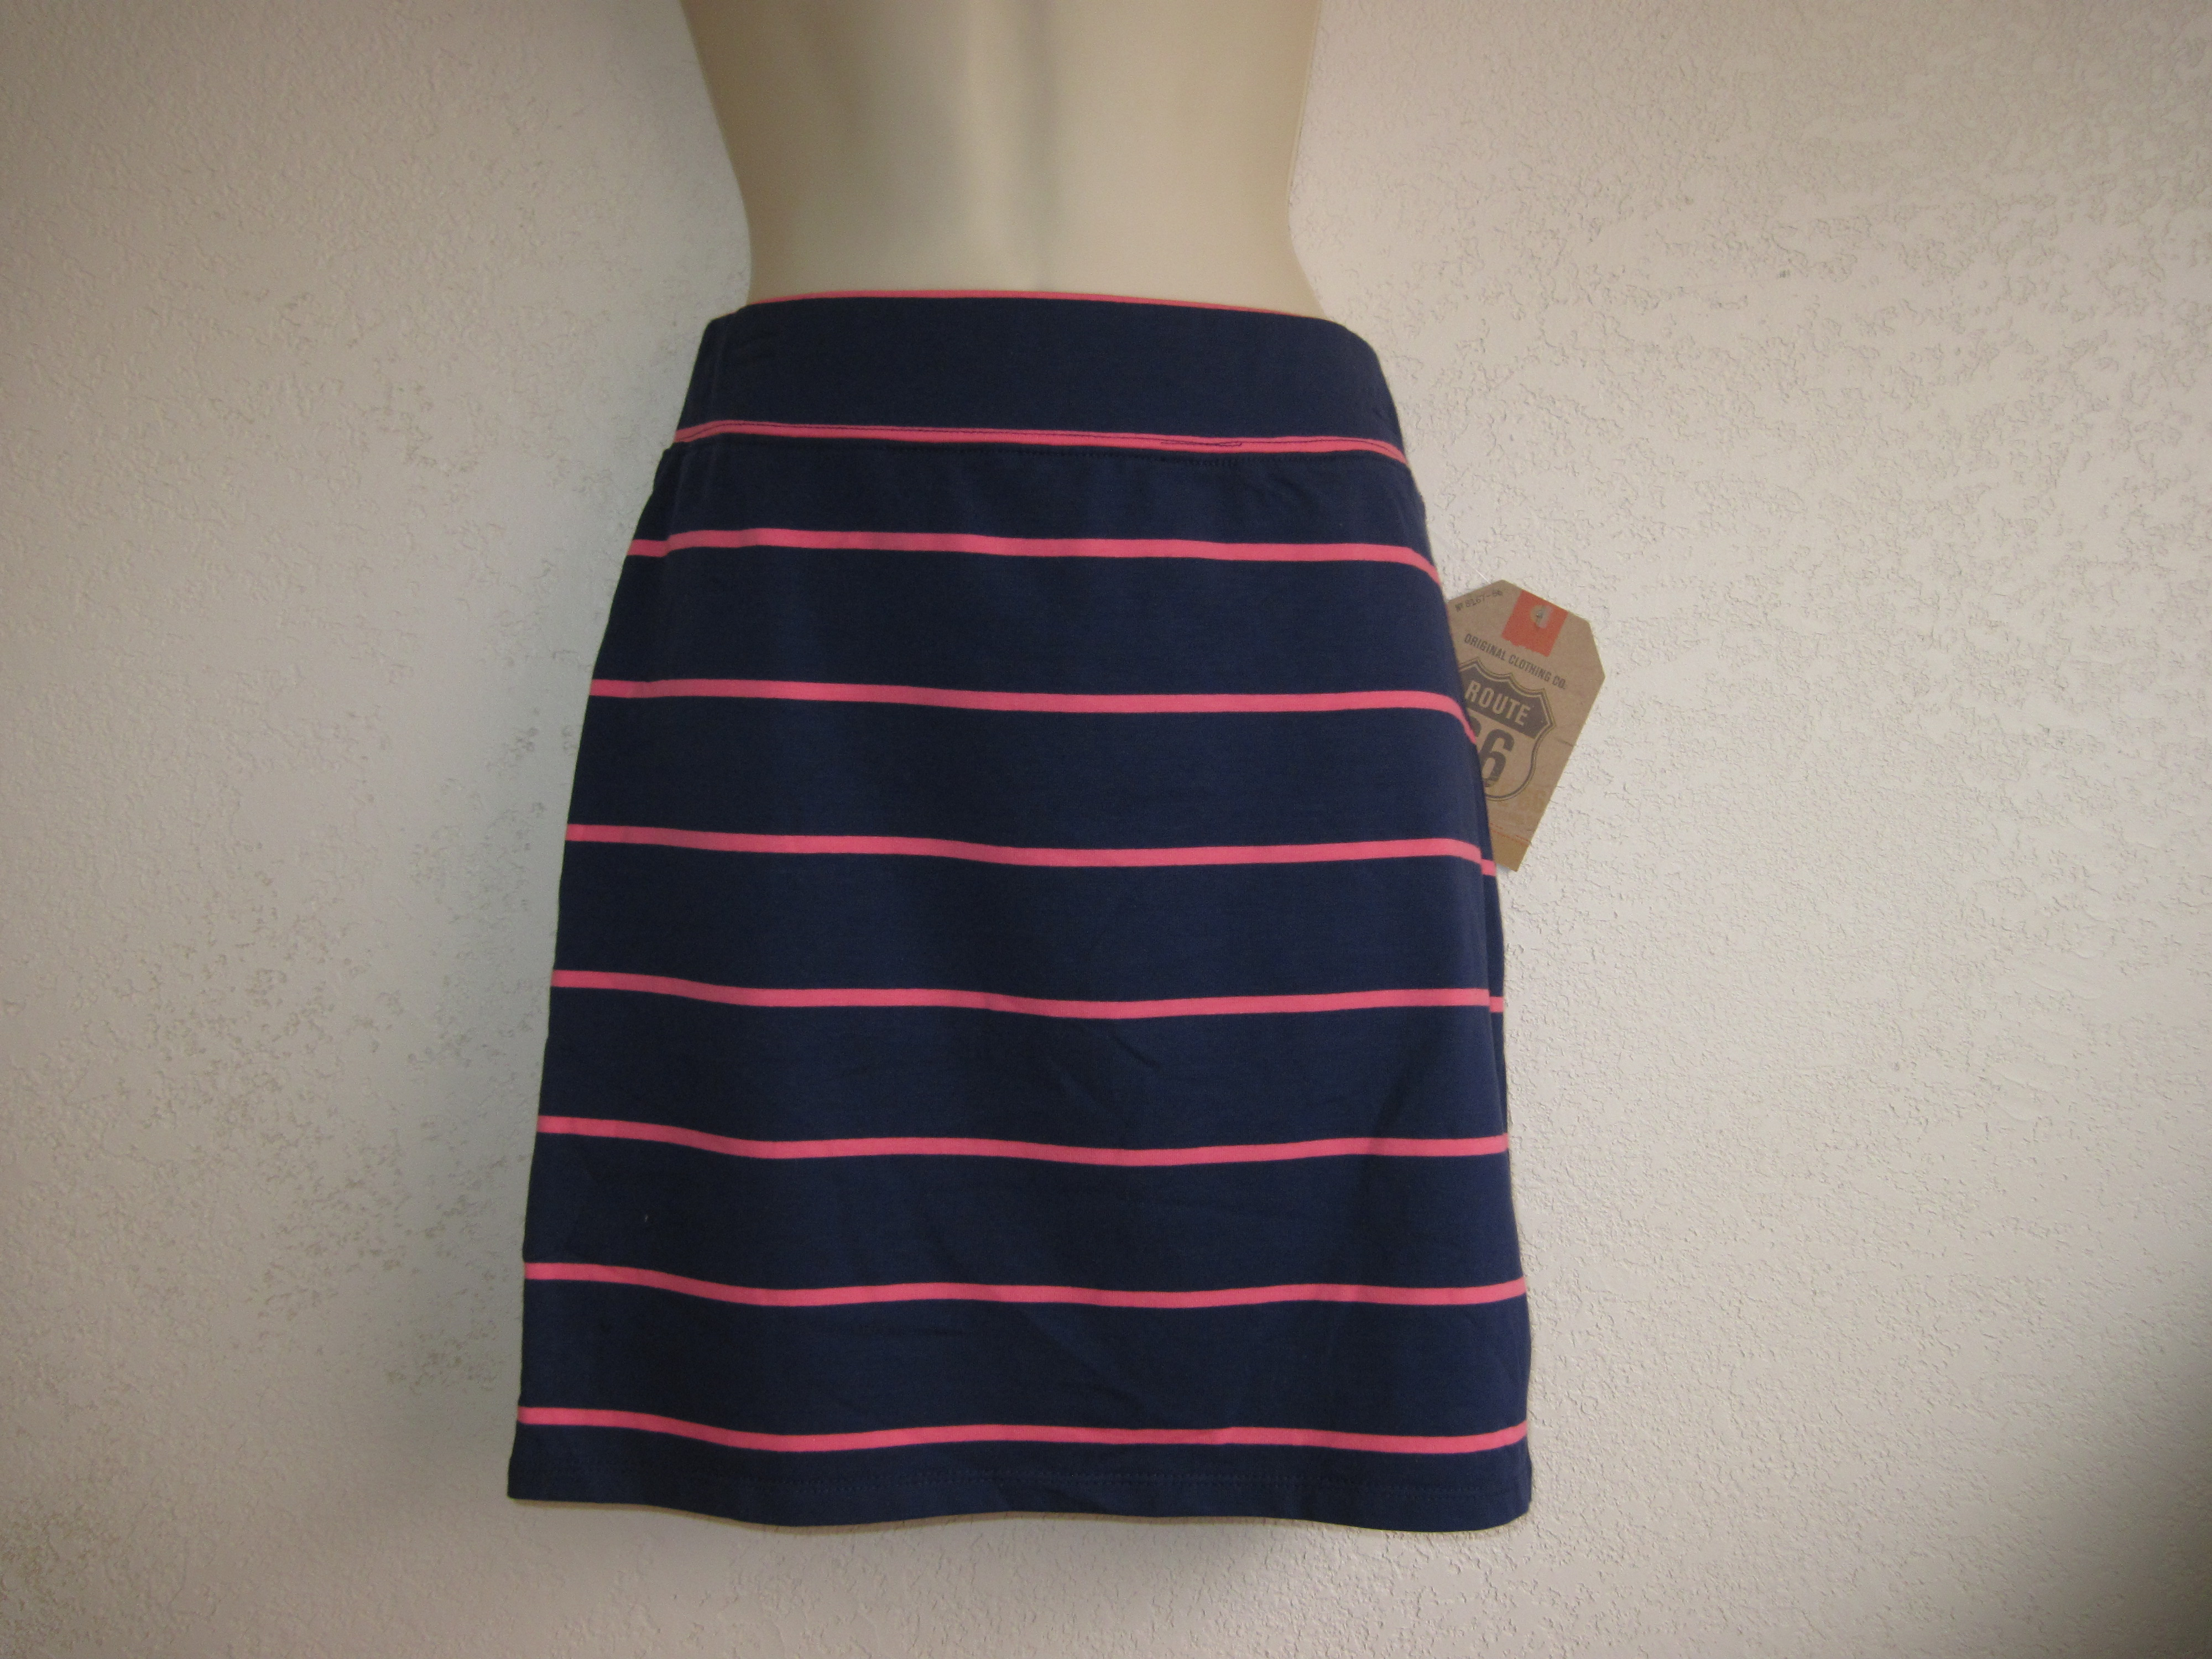 Route 66 Sz Small Knit Skirt (dark purple with pink stripes)